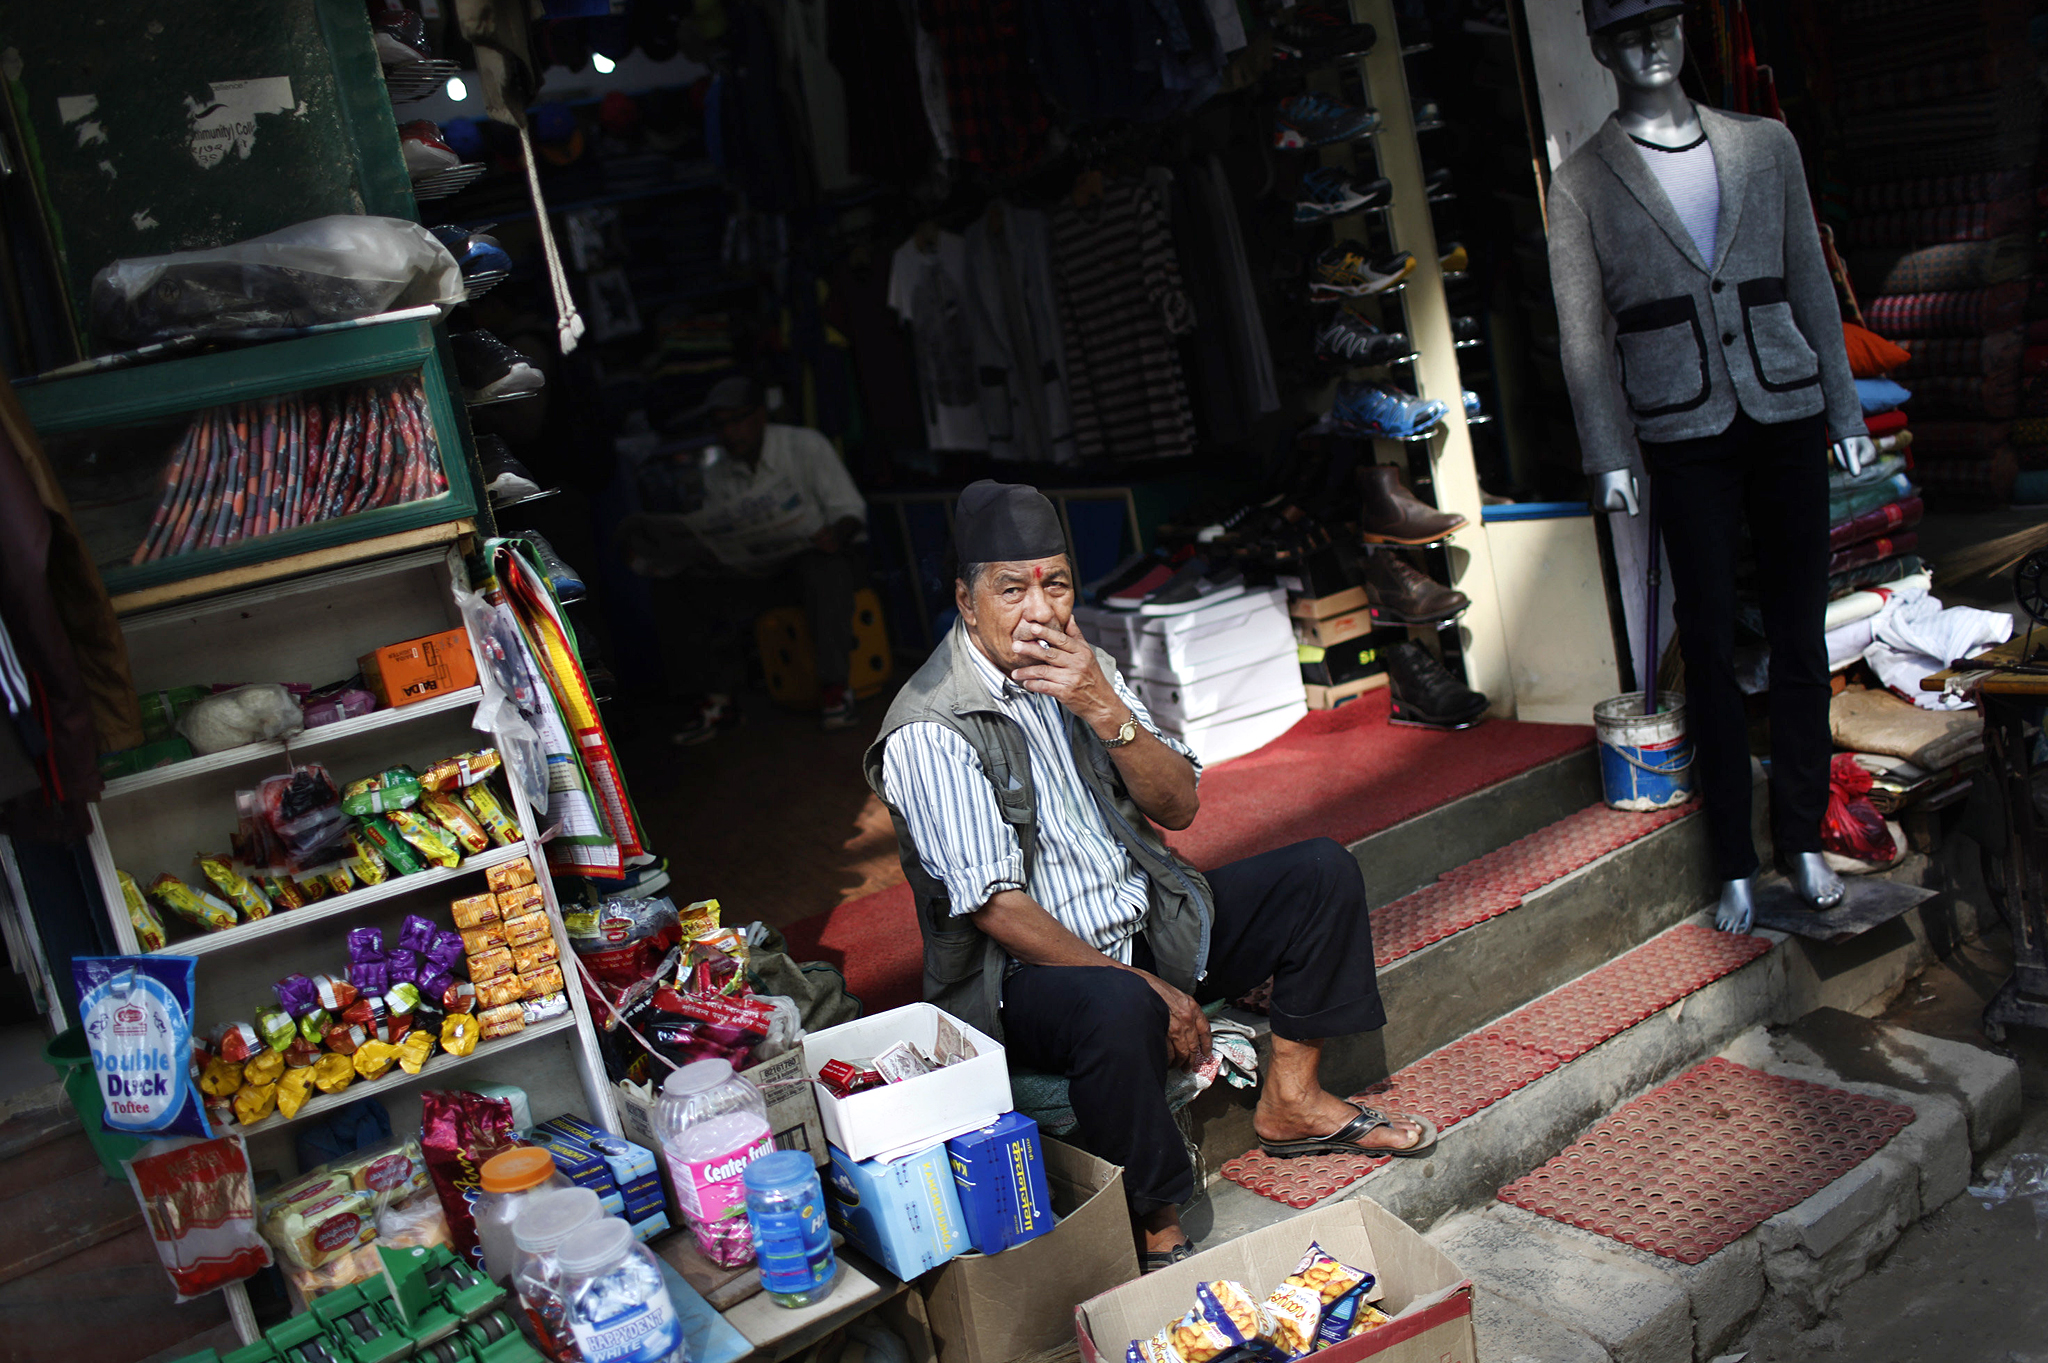 A Nepalese man waits for customers at his shop in Kathmandu, Nepal, Thursday, Oct. 1, 2015. Indian trucks carrying food and fuel began trickling into Nepal on Wednesday, a welcomed development for a nation grappling with shortages caused by a blockade during protests against the country's new constitution. Nepal has restricted the movement of vehicles due to the fuel shortages, with cars permitted to run only on alternate days. (AP Photo/Niranjan Shrestha)